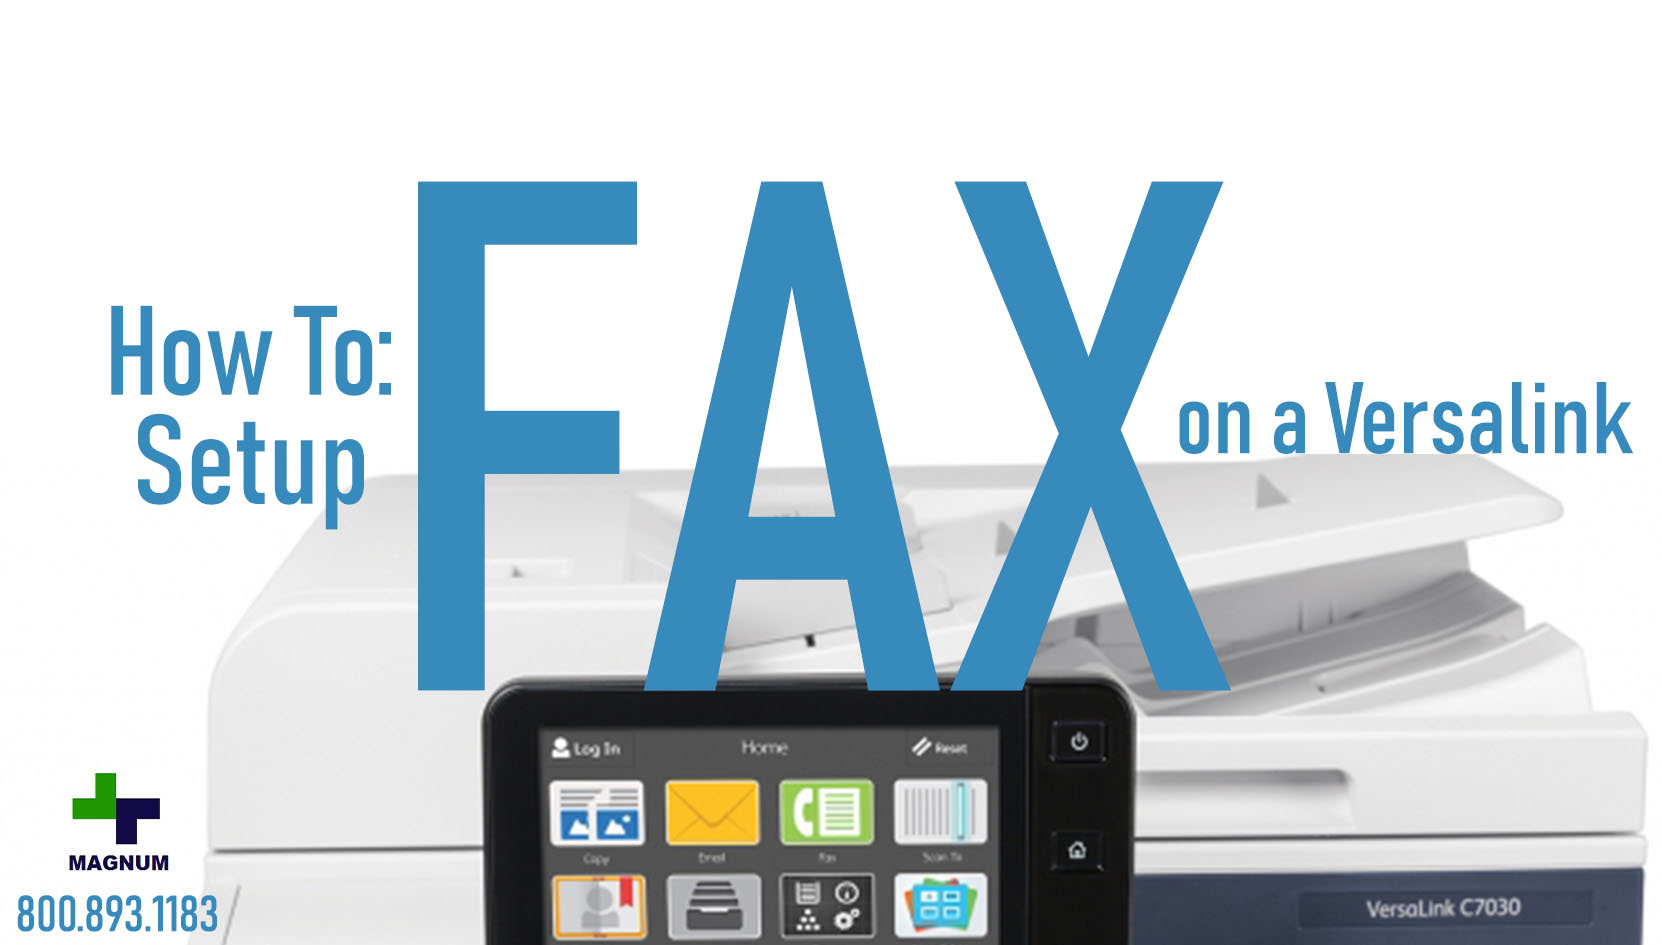 How to: Setup Fax on a Versalink